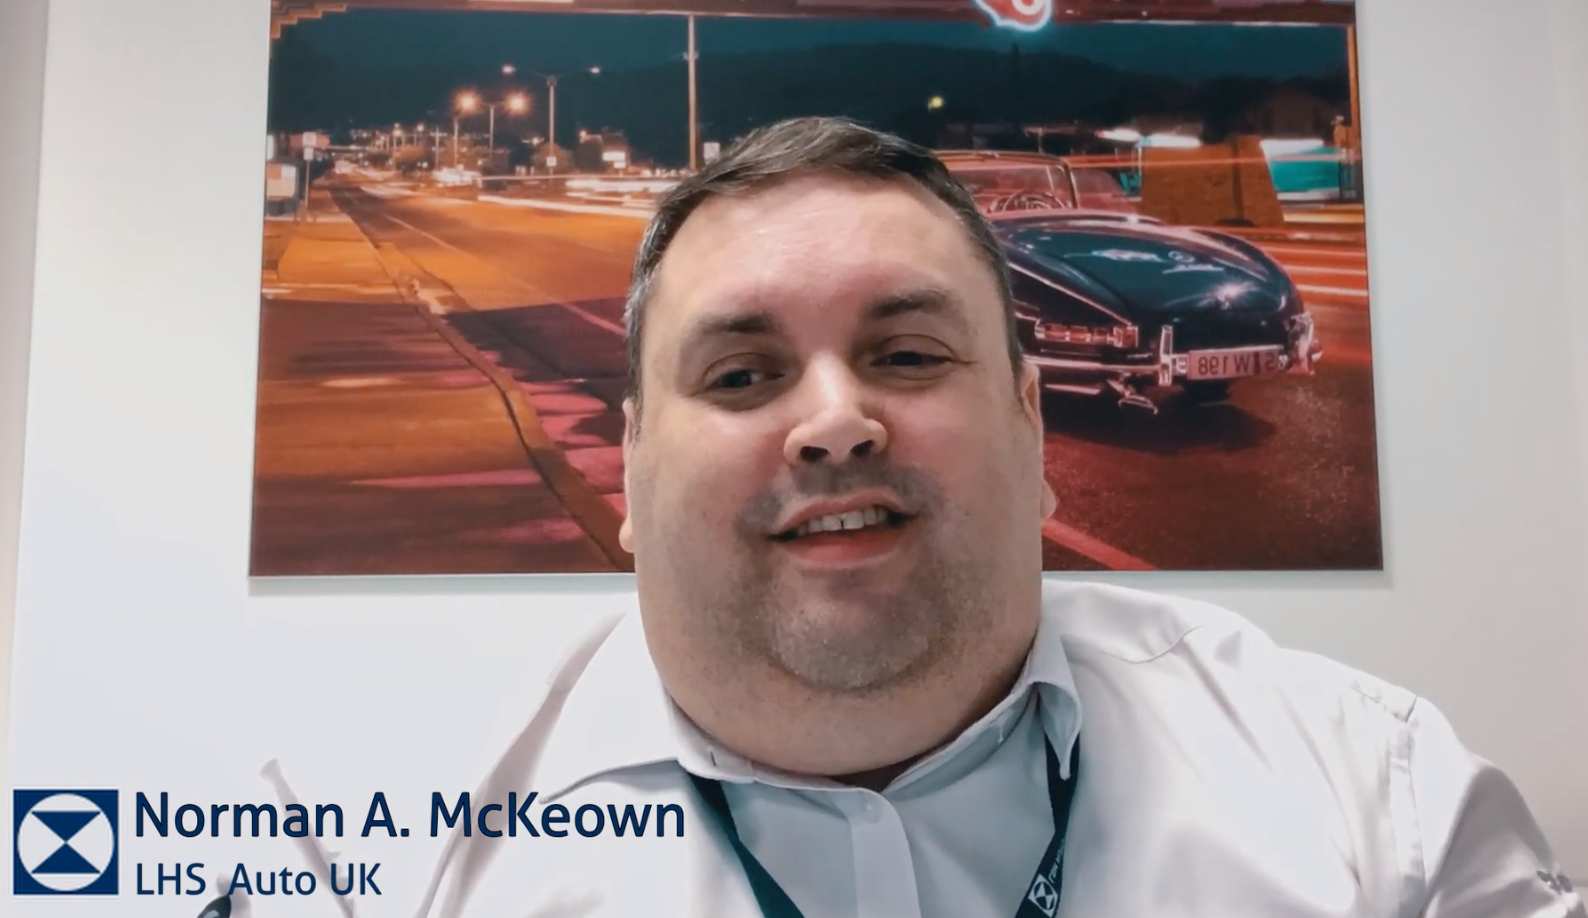 Norman McKeown, LSH Auto UK on BitDam Office365 Email, OneDrive and MS Teams